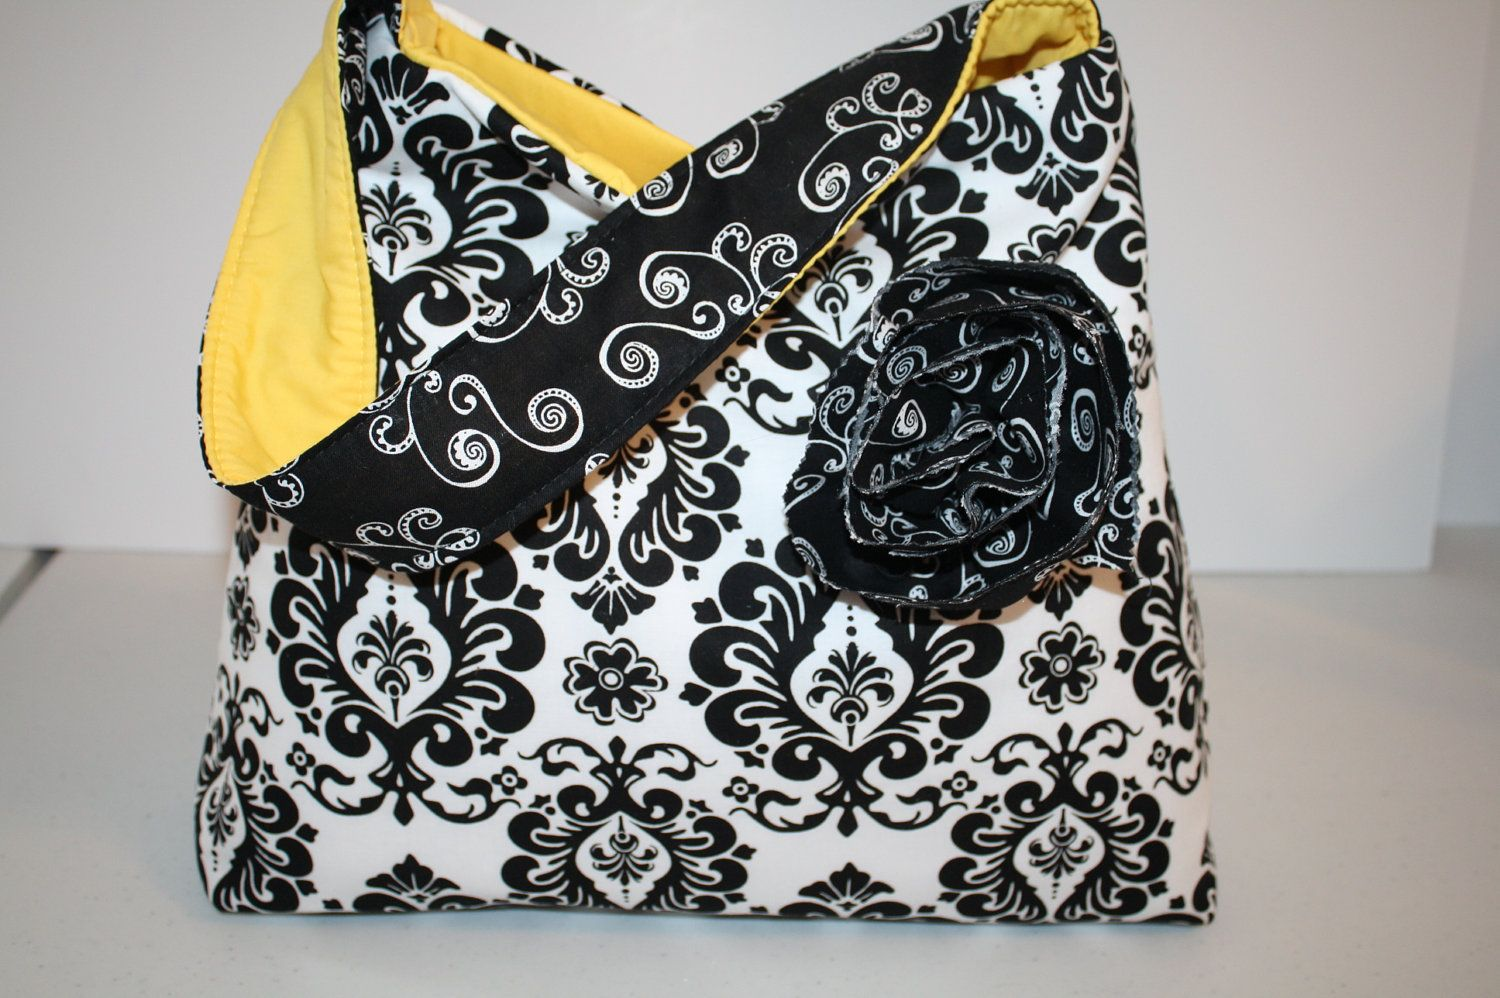 Digital Slr CAMERA Bag Dslr  Camera bag Purse  case Womens  Hobo Market Bag Black Damask Yellow  Messenger strap XcessRize Designs. $80.01, via Etsy.